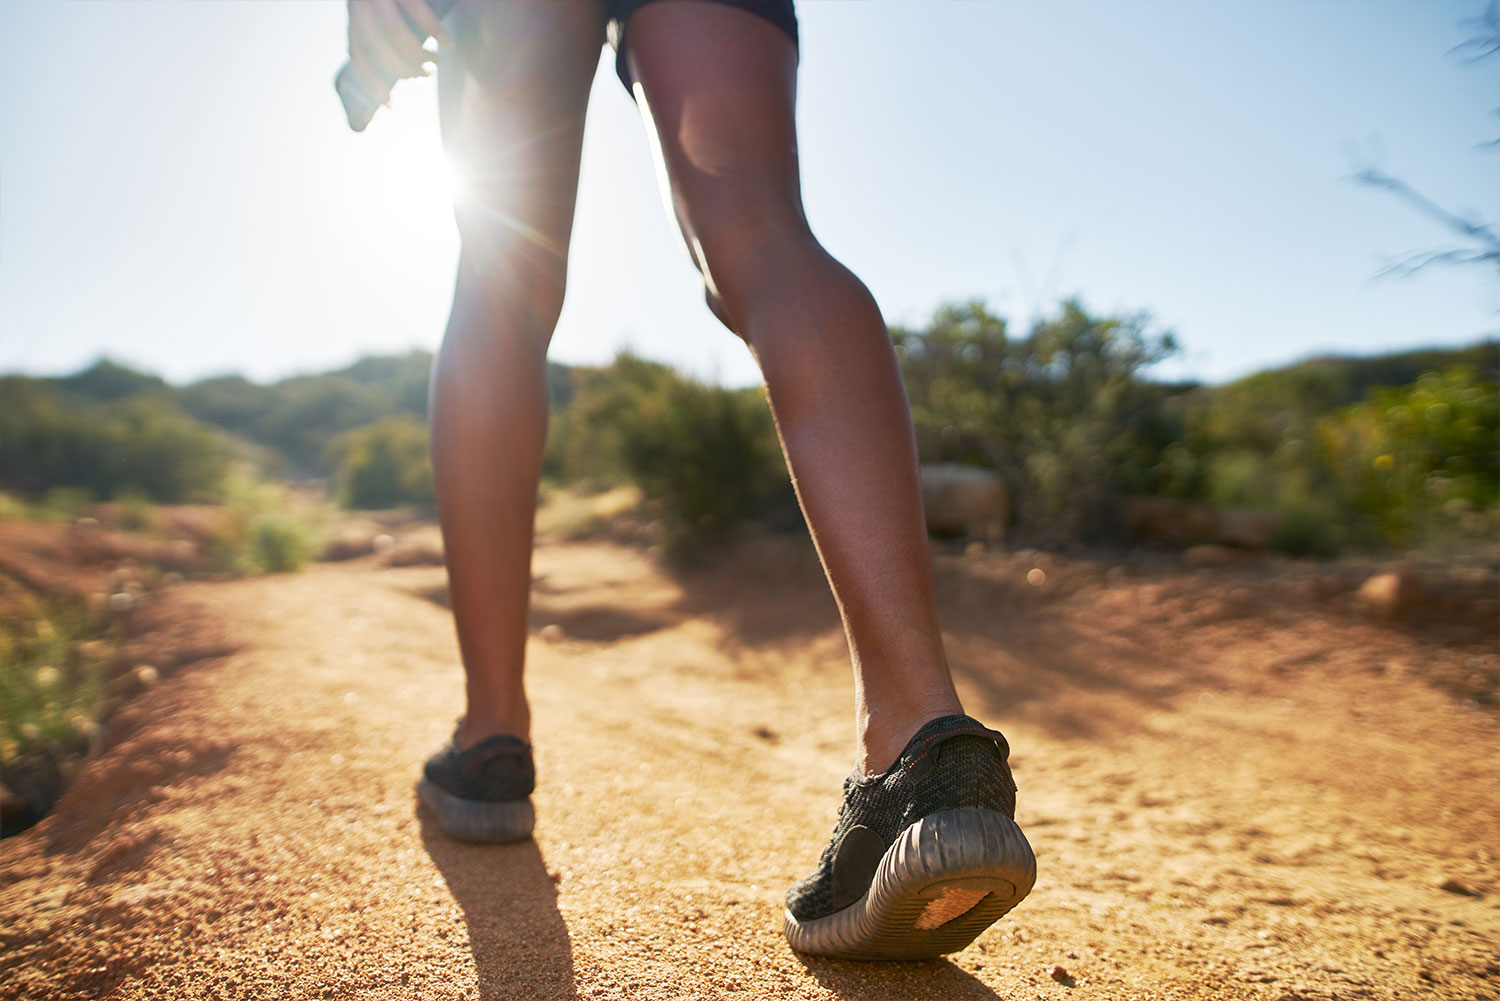 What is venous insufficiency and how can it be treated?